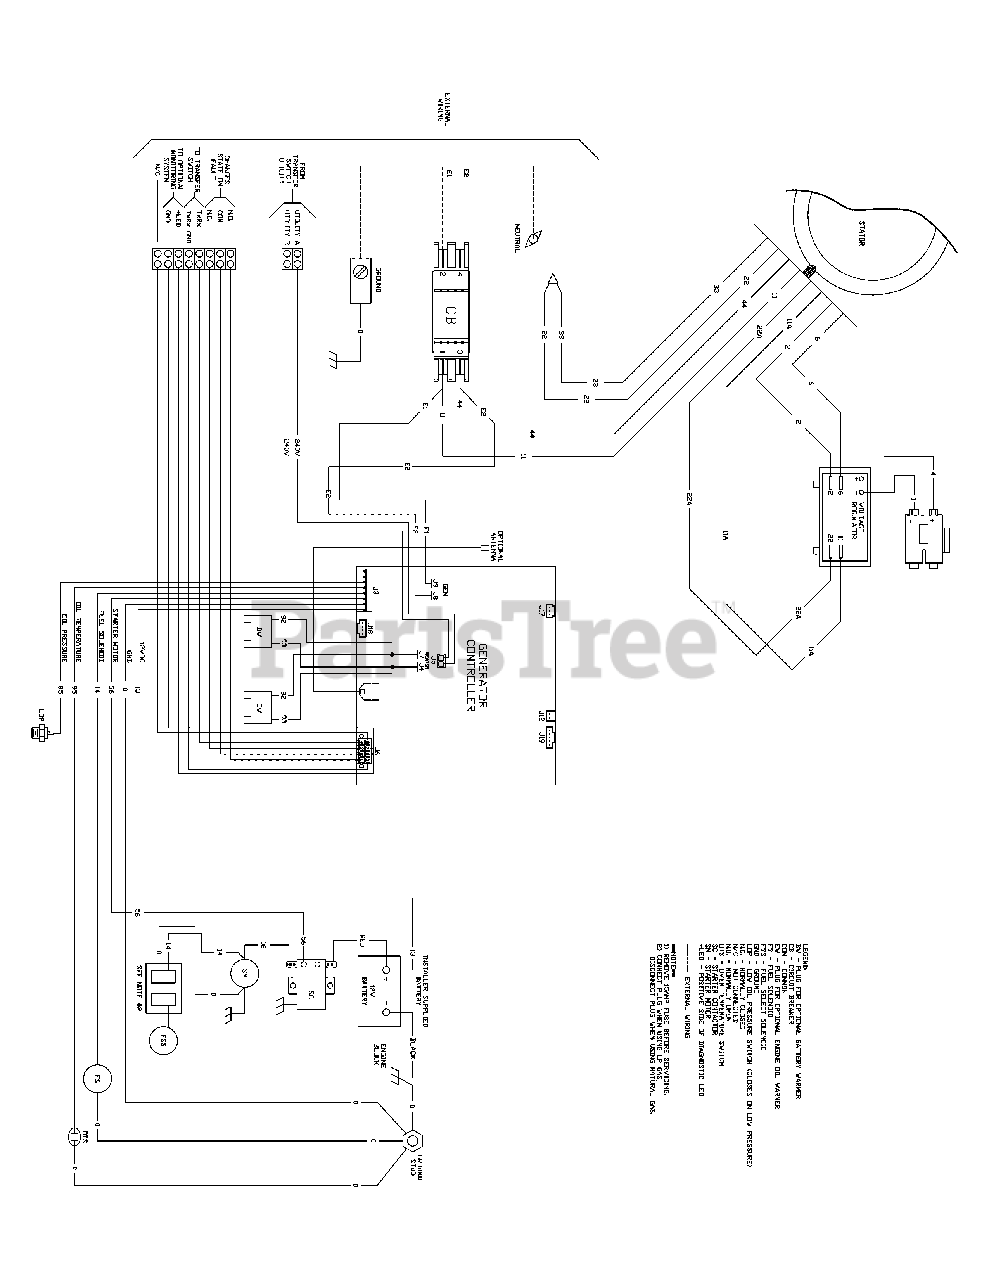 general electric wiring diagram general electric 040447 01 ge 10kw home standby generator with  ge 10kw home standby generator